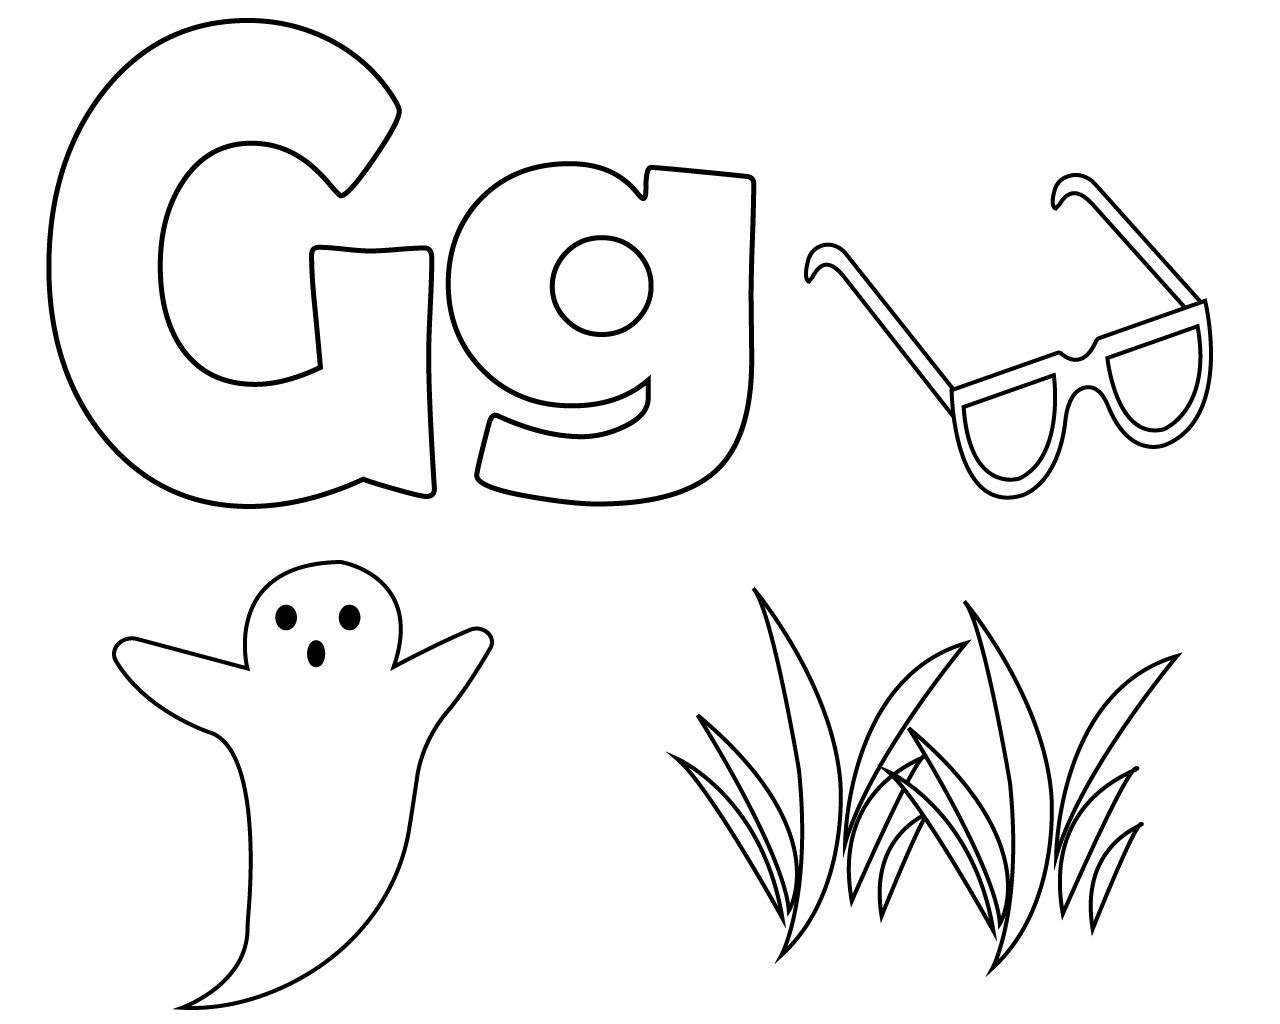 Letter G Coloring Pages Preschool Alphabet Coloring Pages